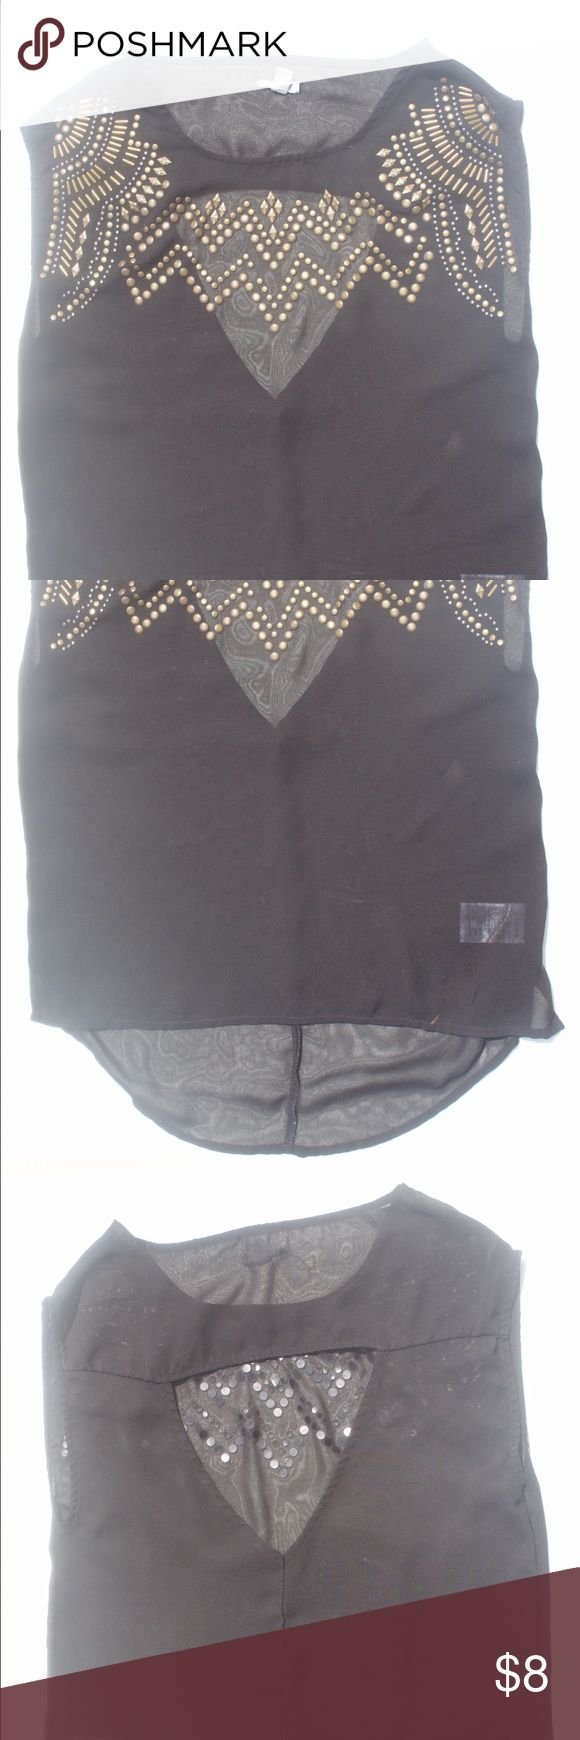 Closet triangle cut out back dress - Gold Studded Blouse With Triangle Back Opening A Black Sheer Exot Gold Studded Blouse With